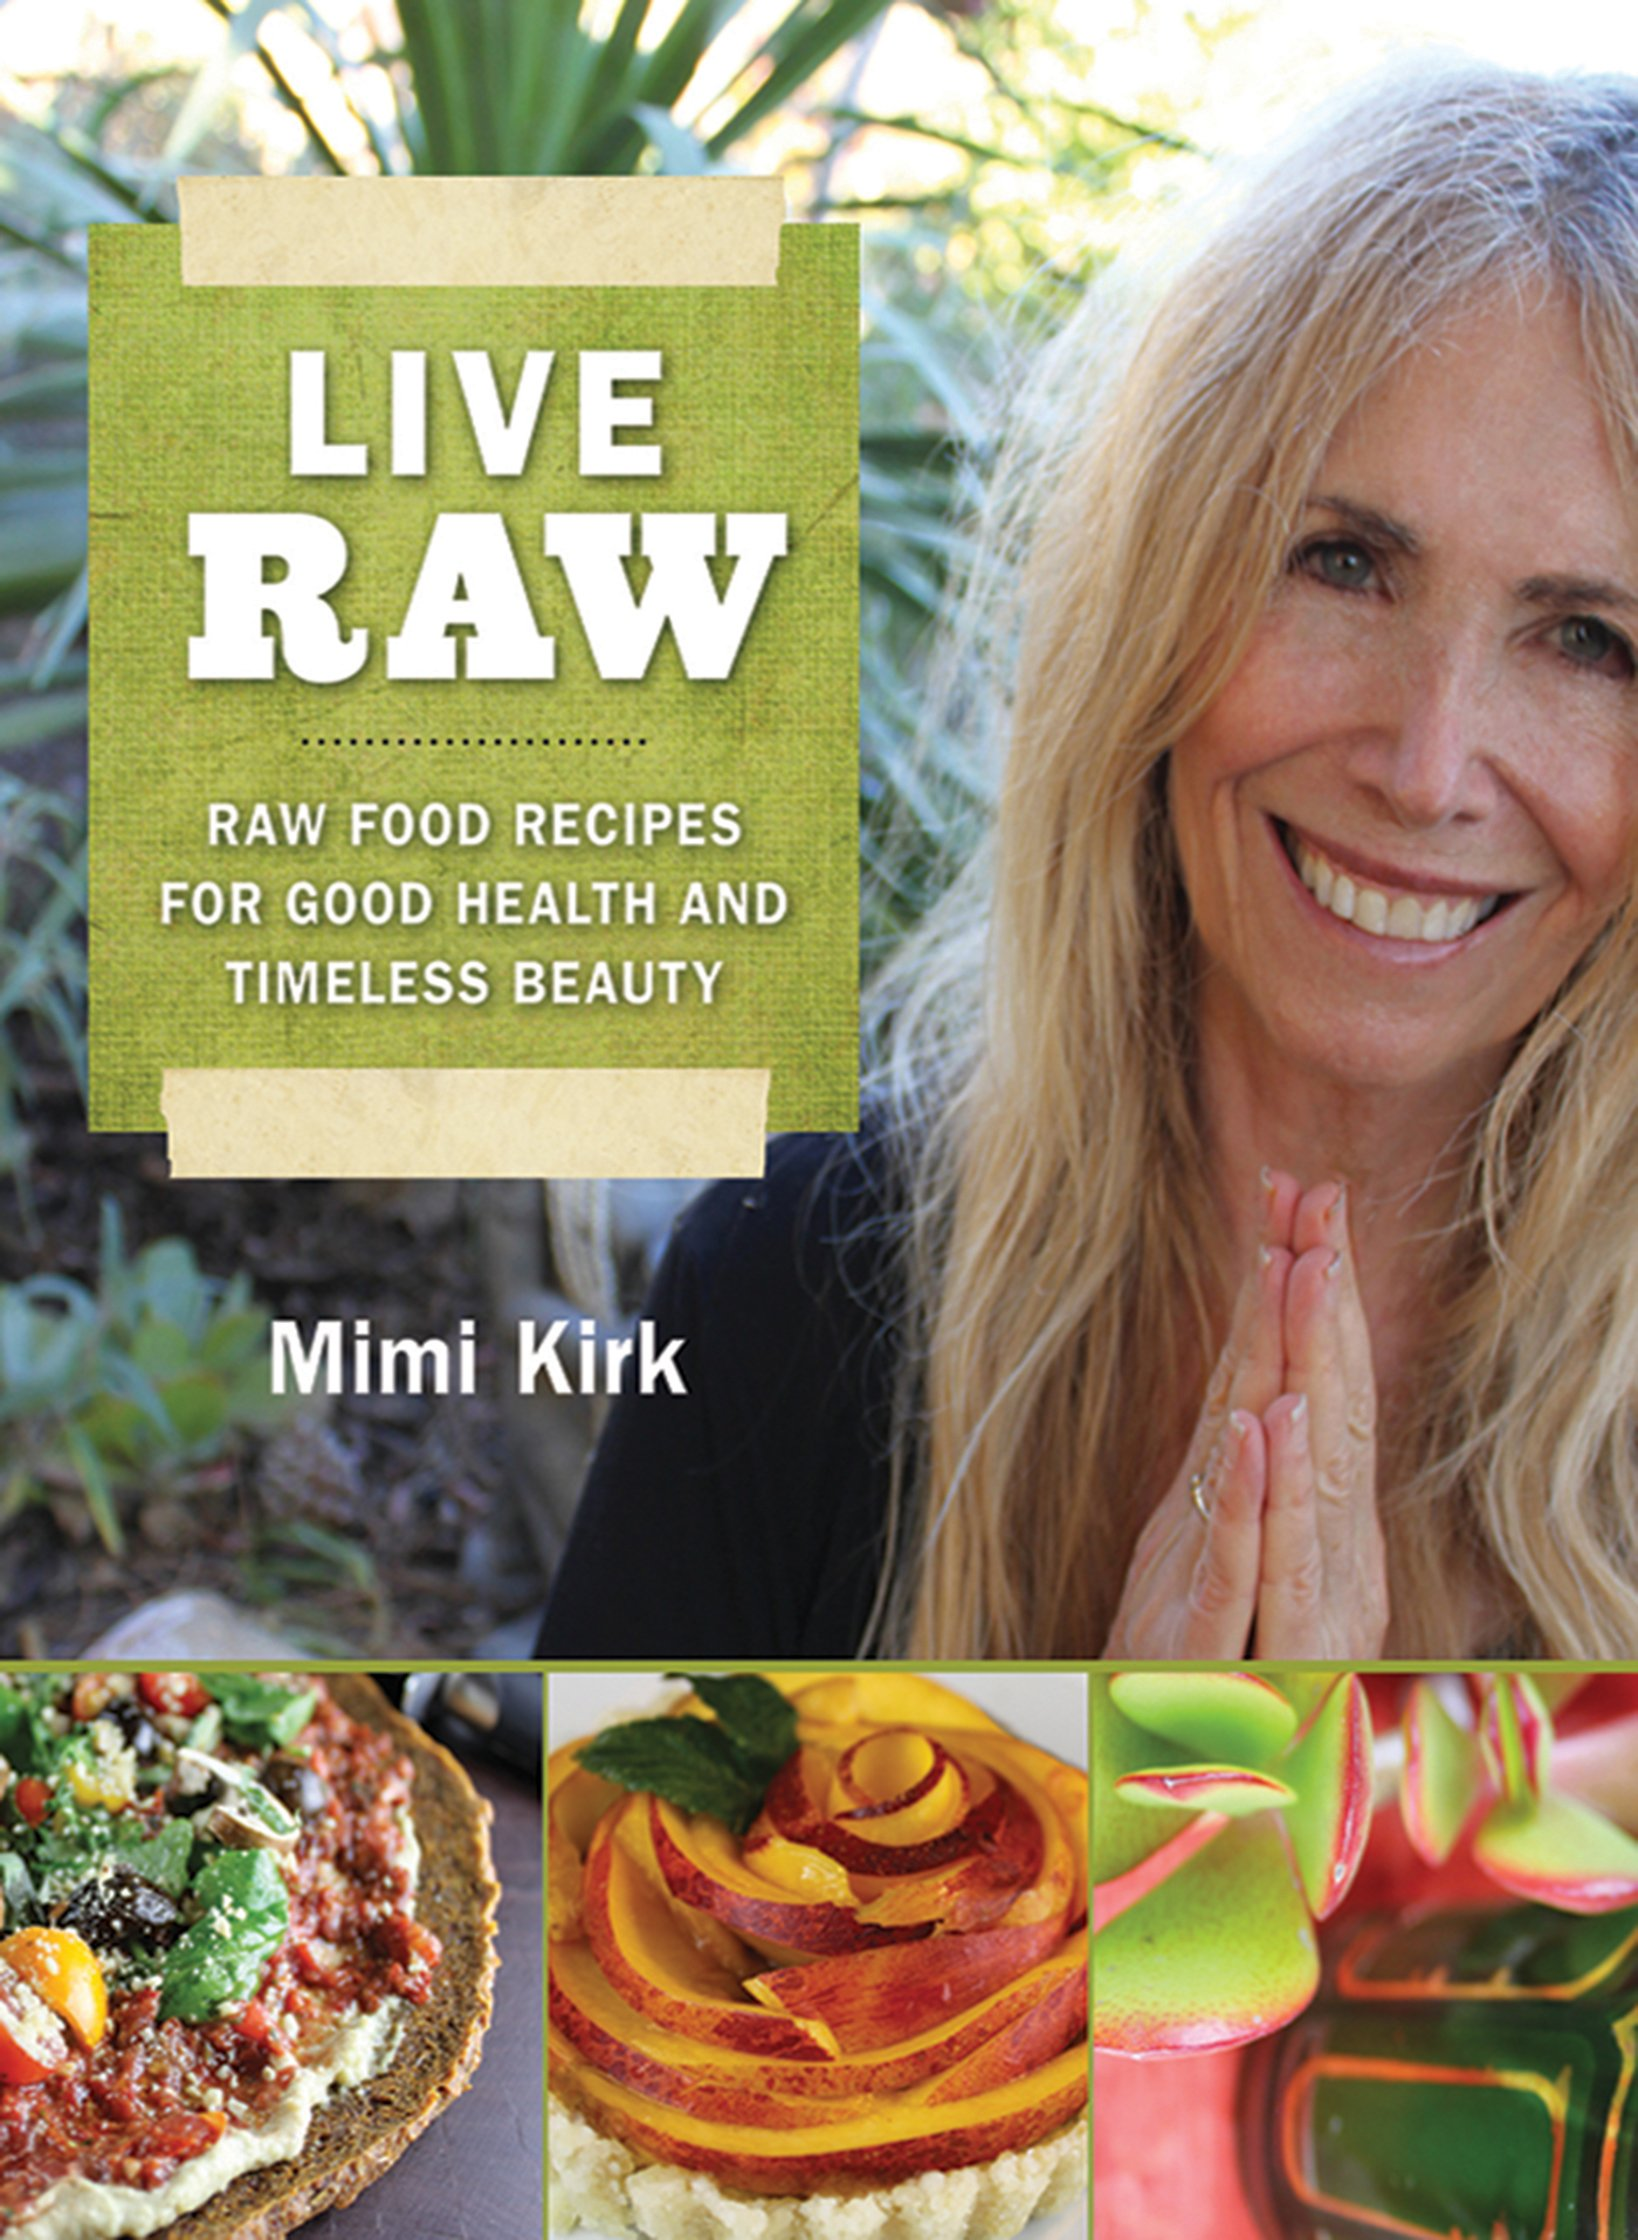 Live raw raw food recipes for good health and timeless beauty mimi live raw raw food recipes for good health and timeless beauty mimi kirk 9781616082741 amazon books forumfinder Choice Image